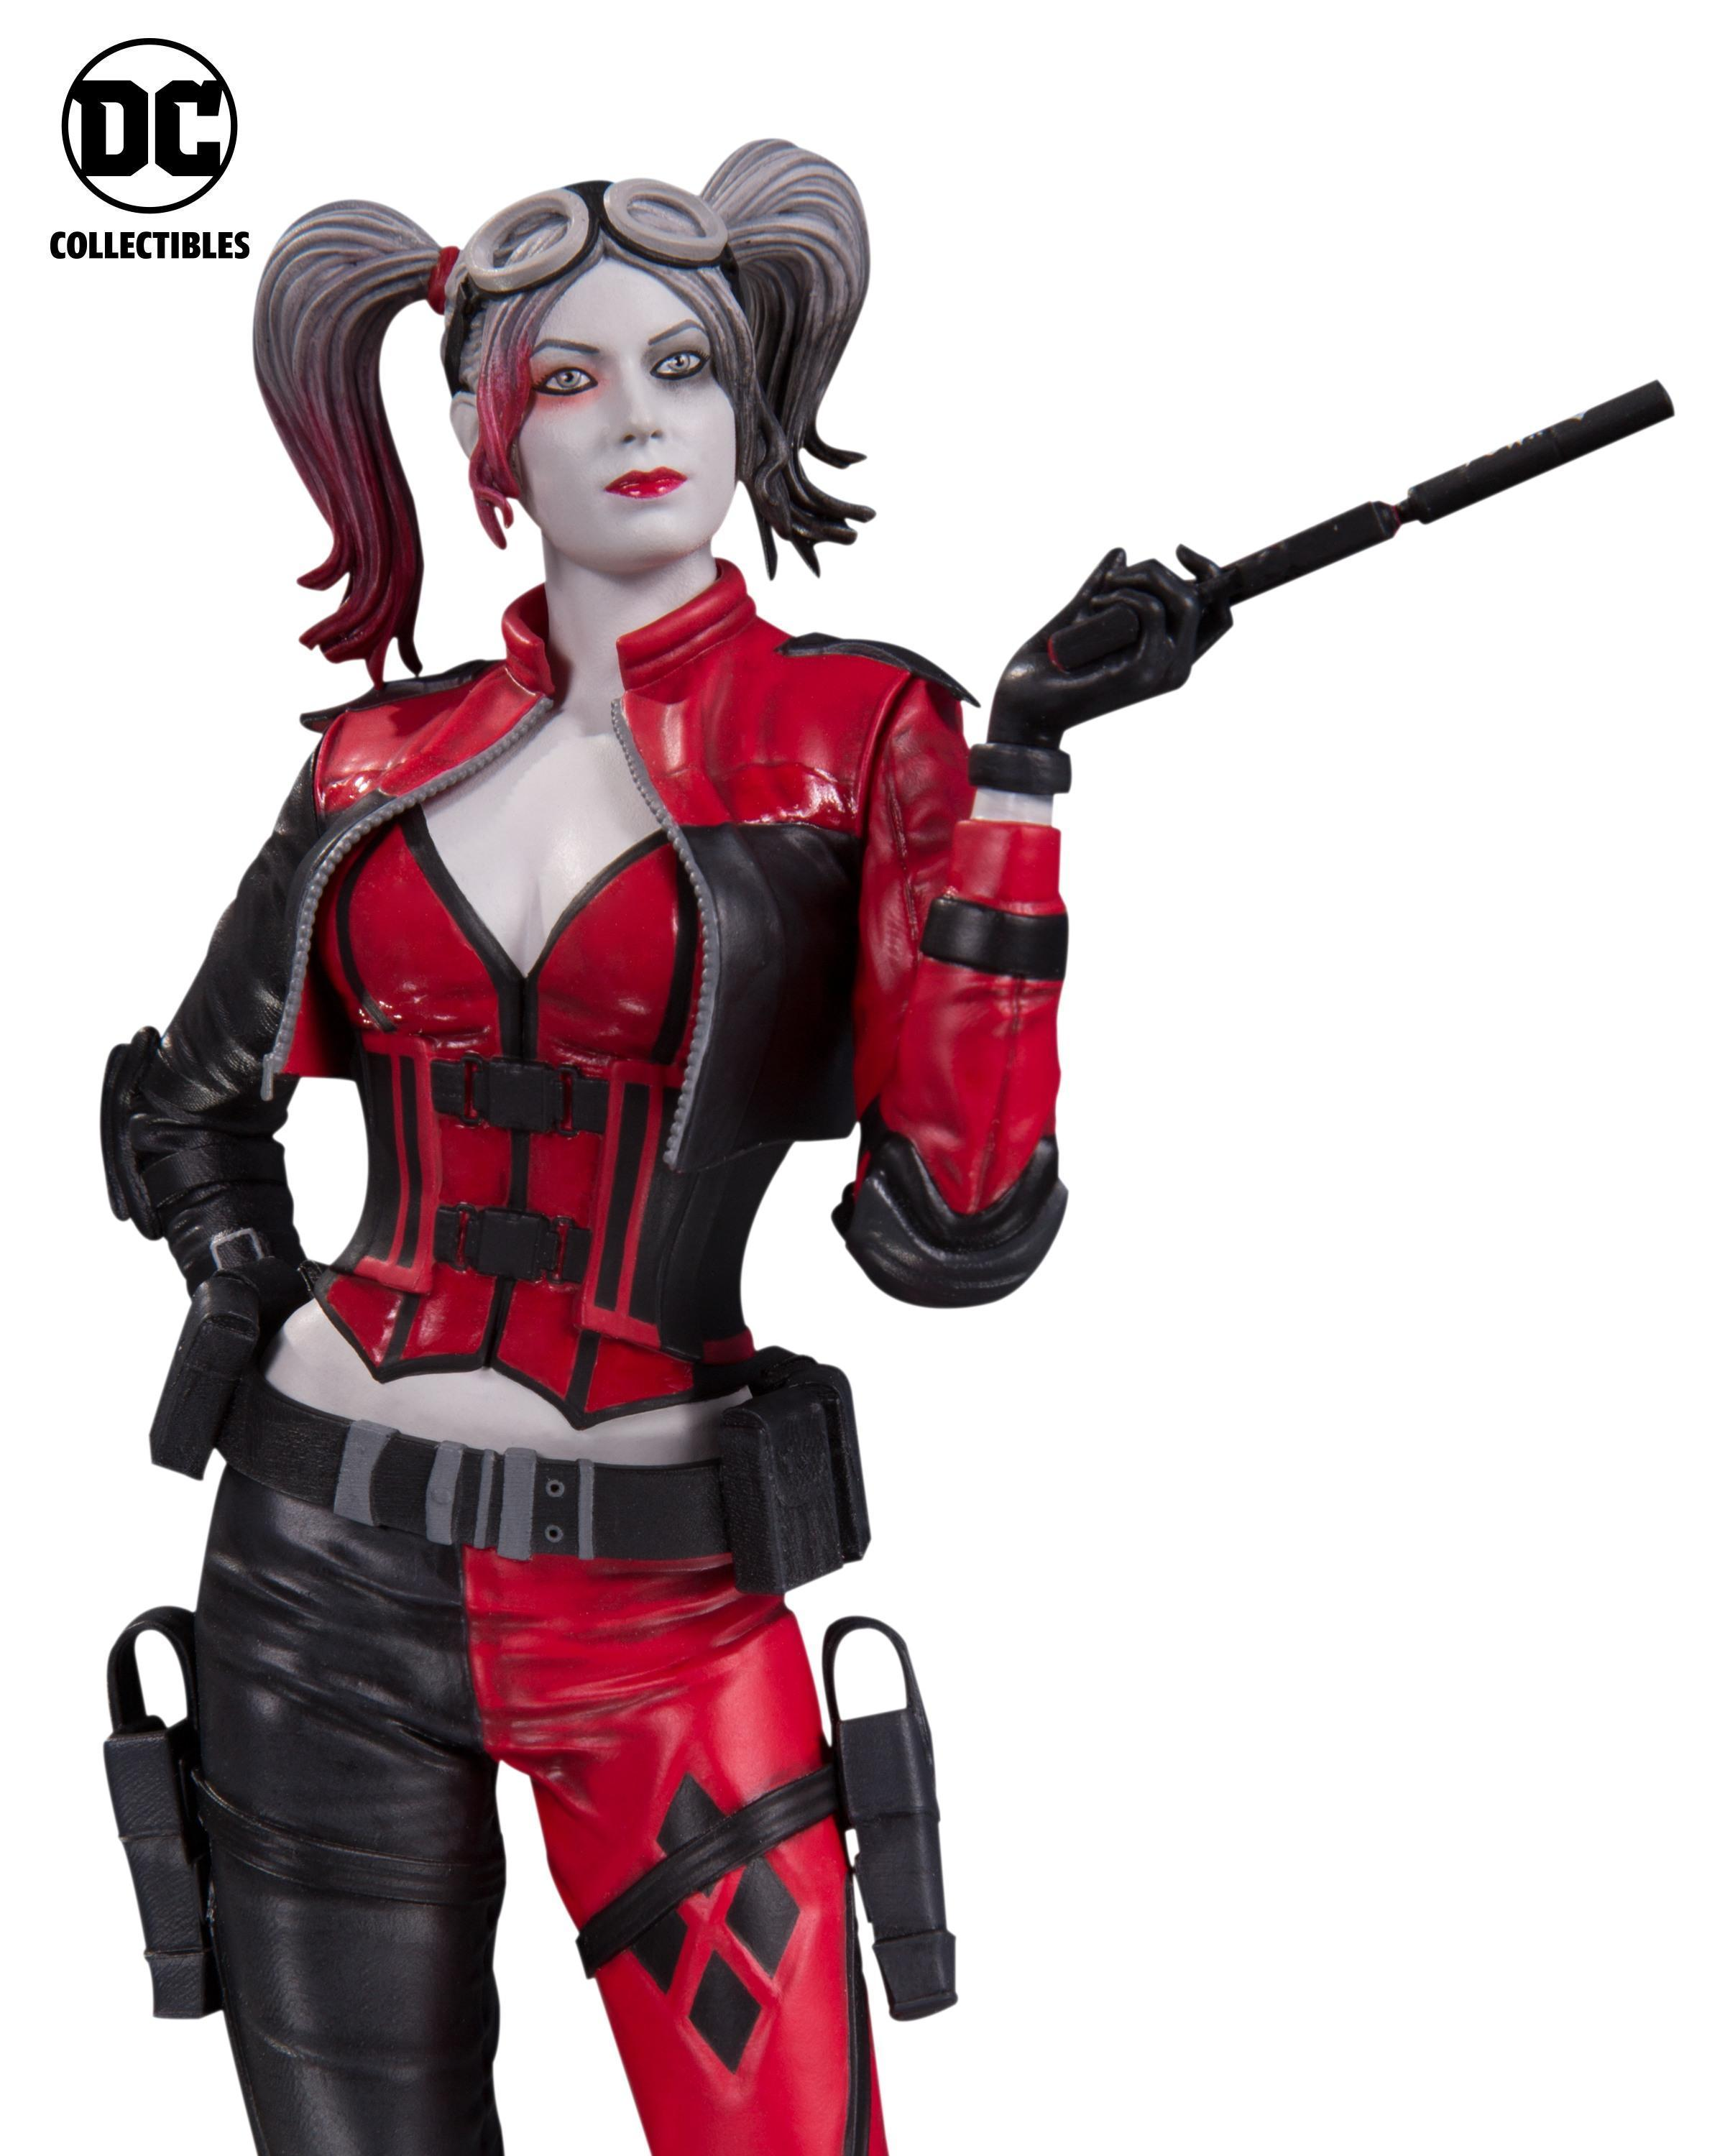 dc collectibles injustice 2 harley quin red white and black statue the toyark news. Black Bedroom Furniture Sets. Home Design Ideas